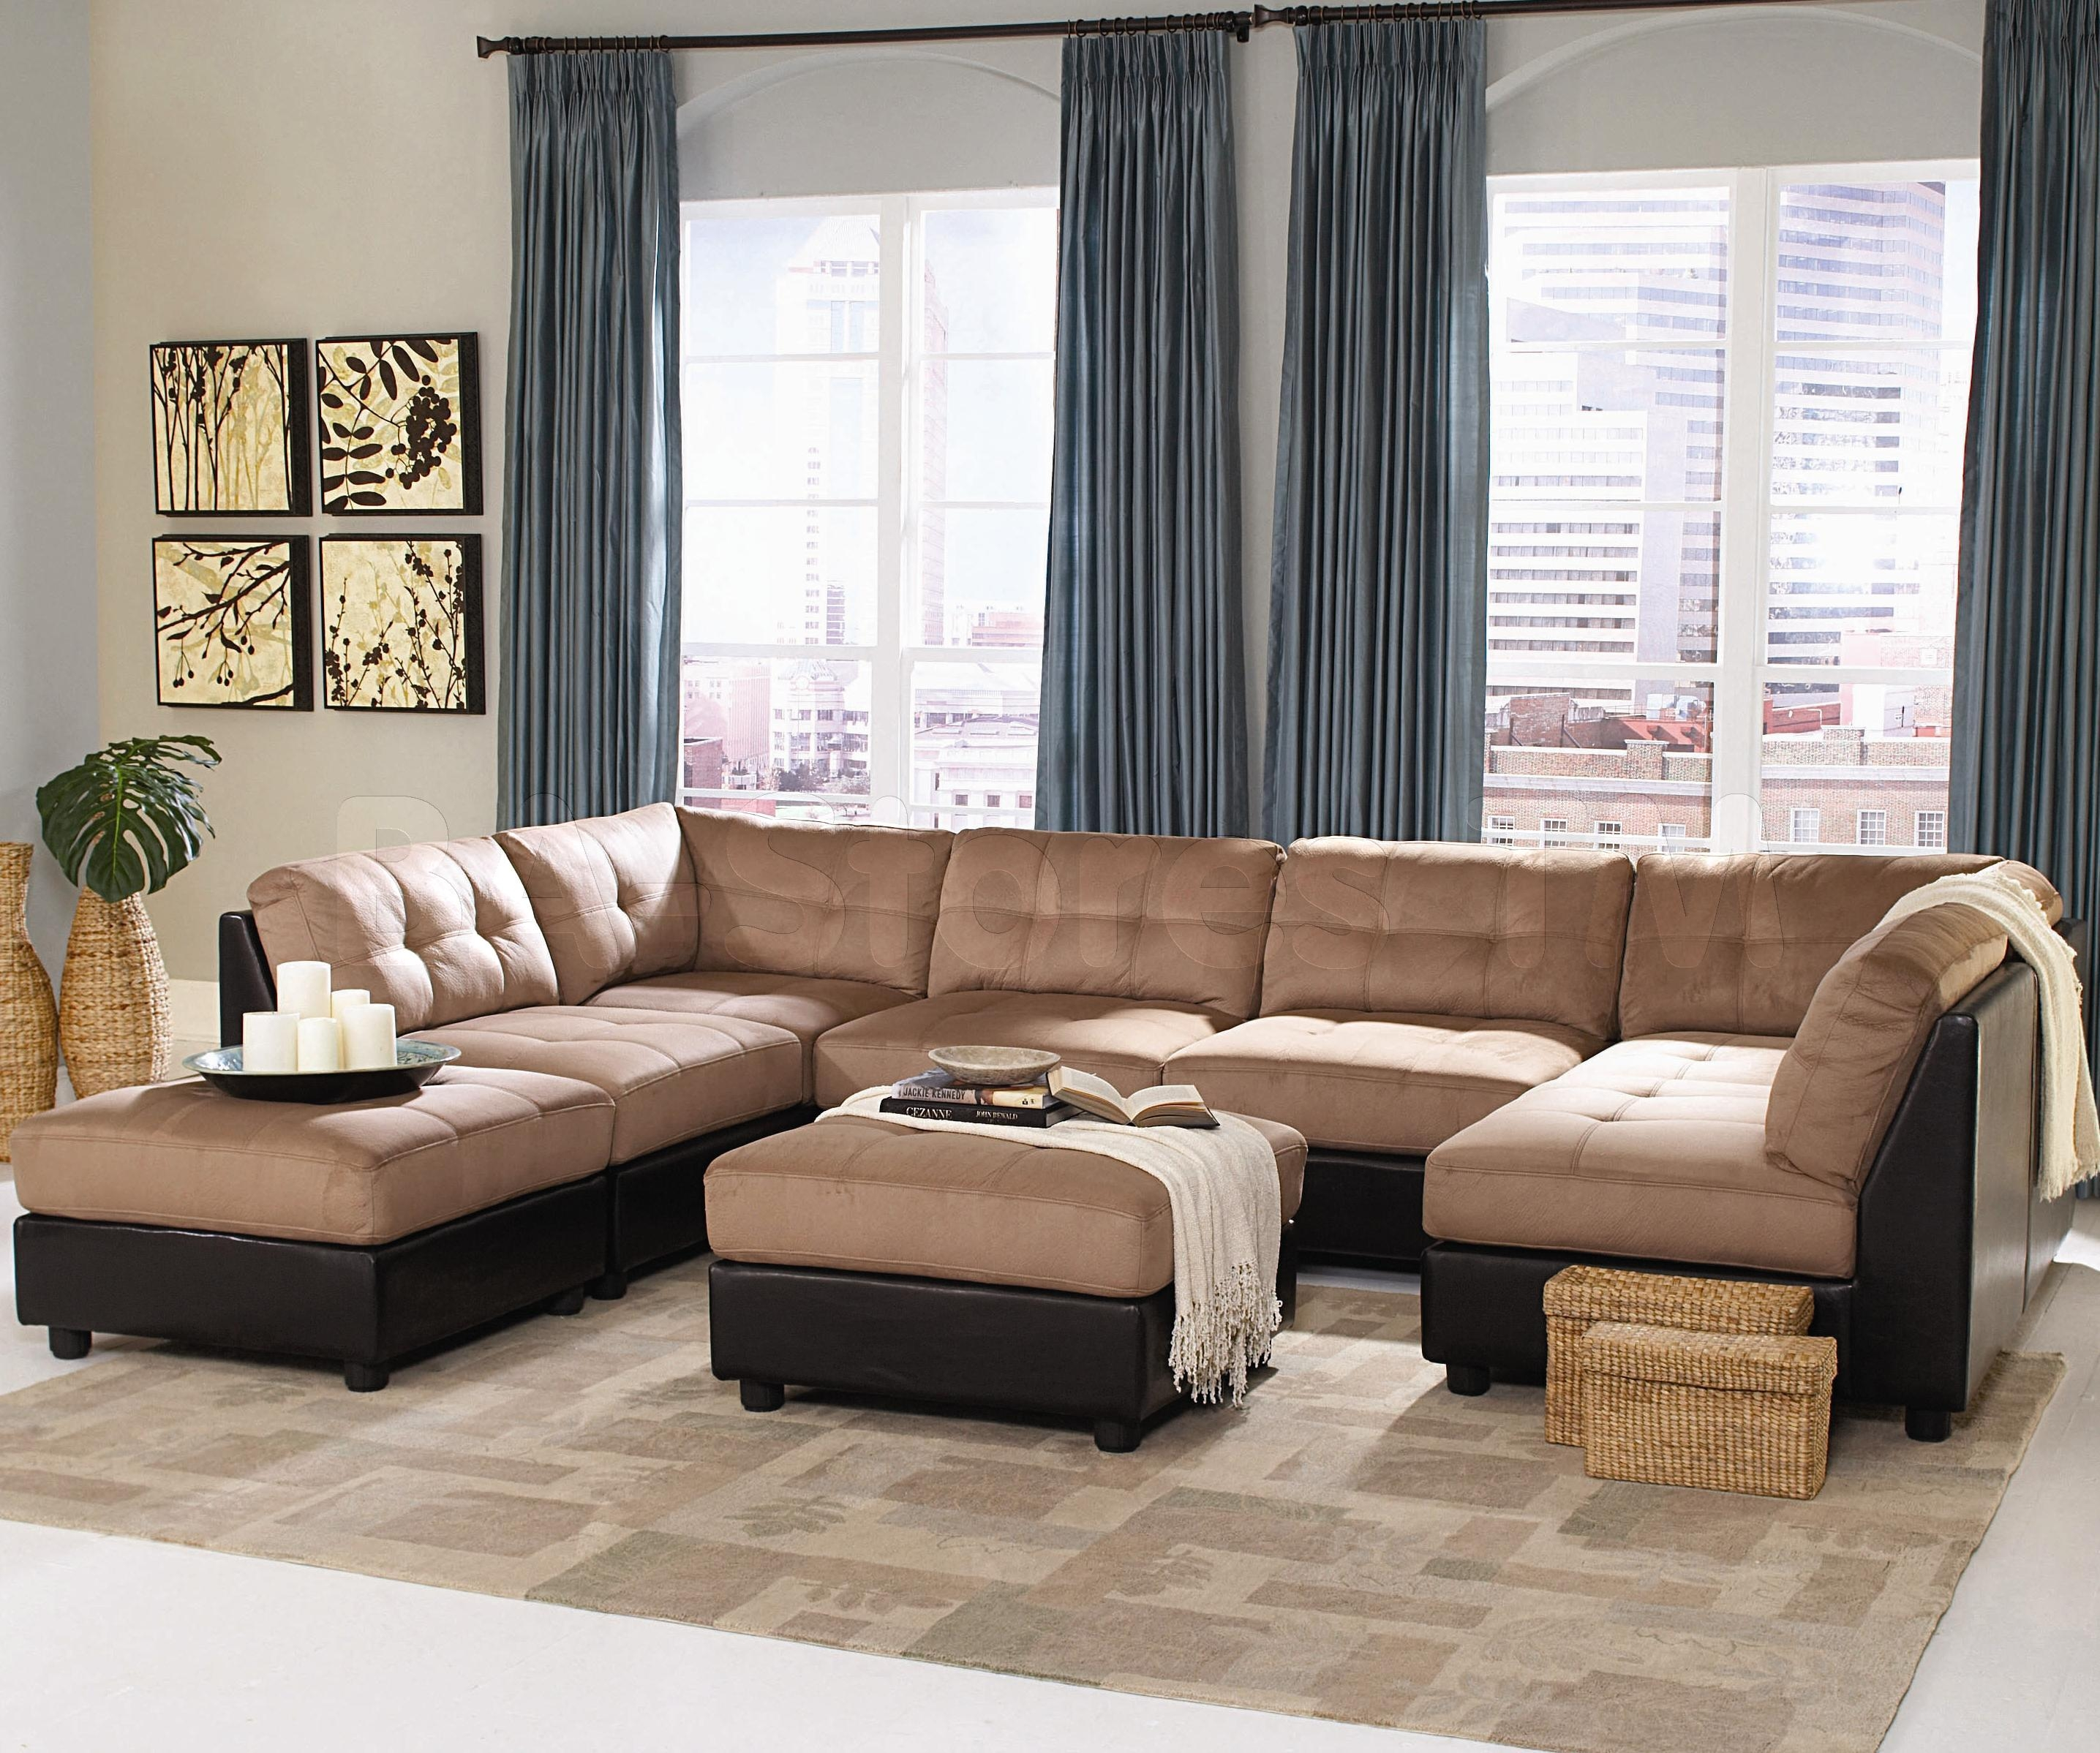 Contemporary Black Leather Sectional Sofa Left Side Chaise With Regard To Contemporary Black Leather Sectional Sofa Left Side Chaise (Image 8 of 15)